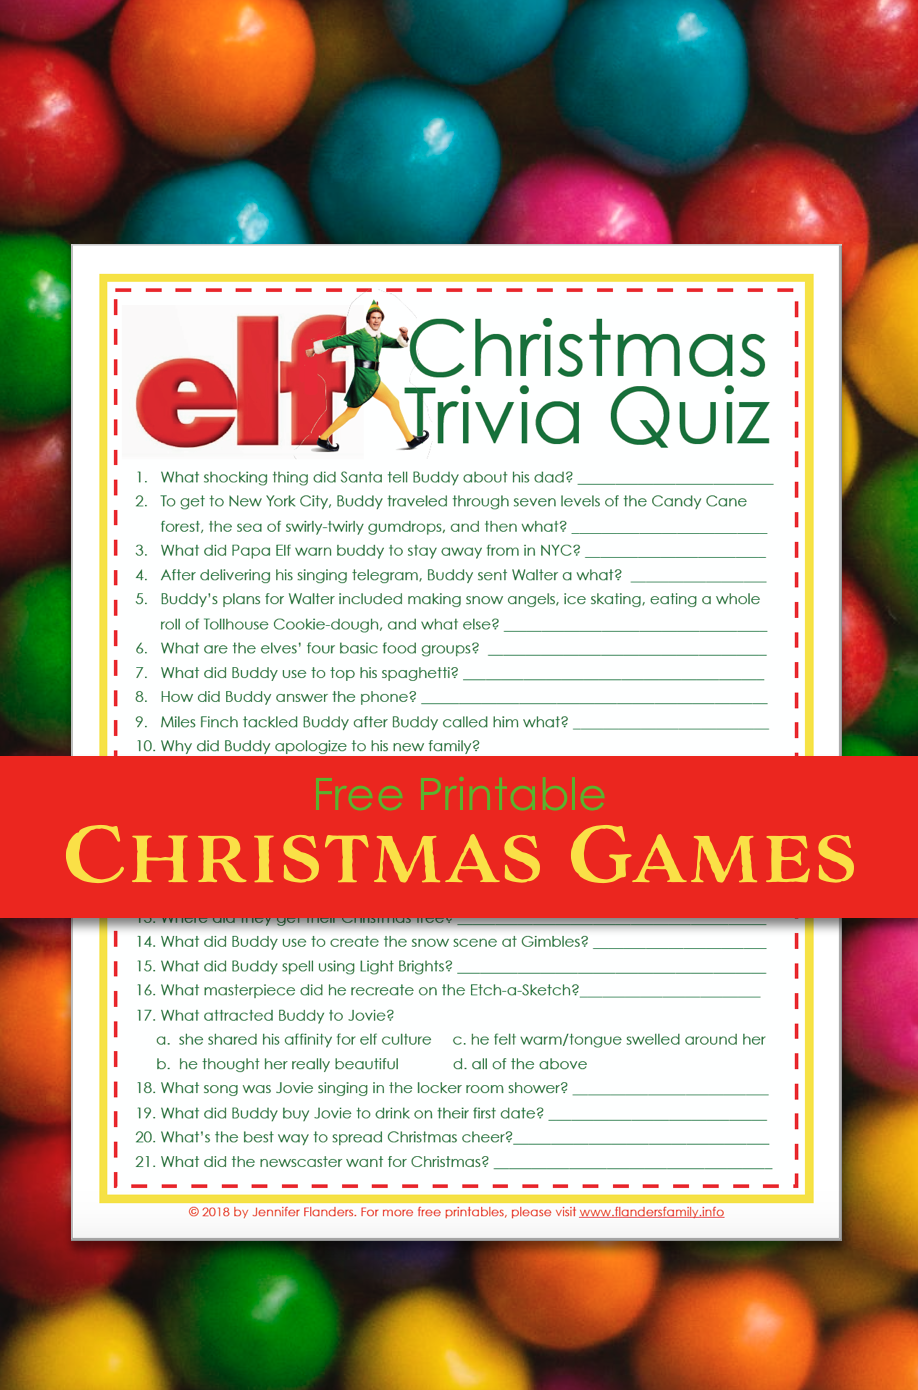 picture about Christmas Trivia Game Printable named Elf Xmas Trivia Activity (No cost Printable) - Flanders Loved ones